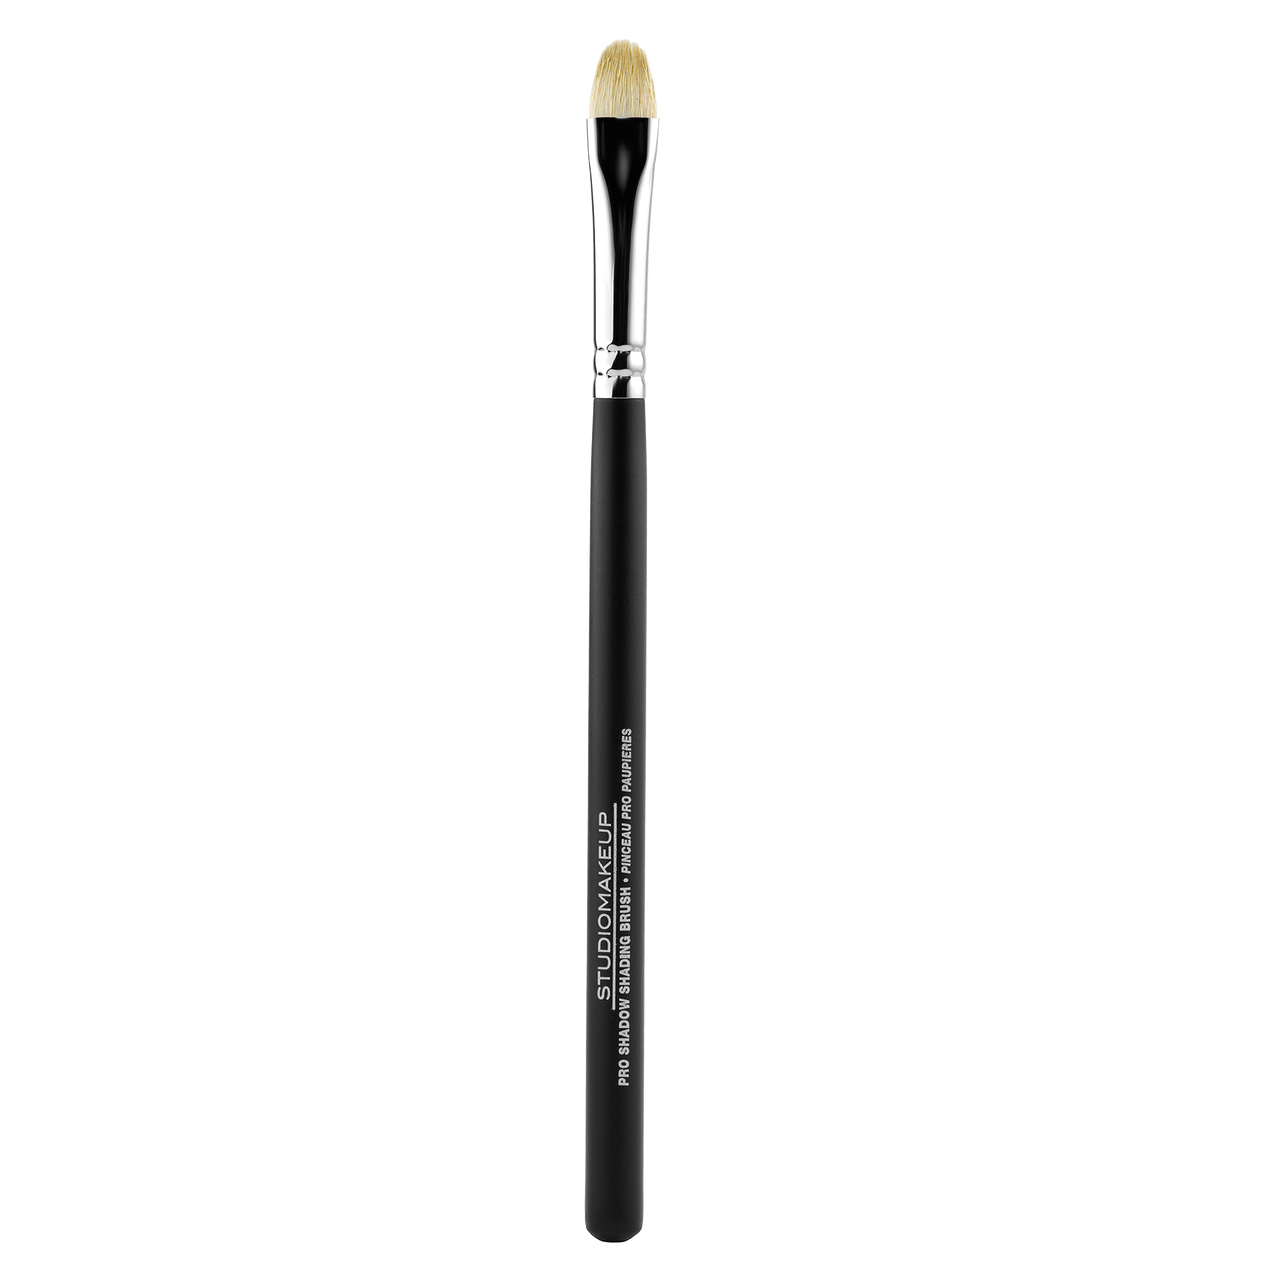 PRO SHADOW SHADING BRUSH - Studio Make Up US